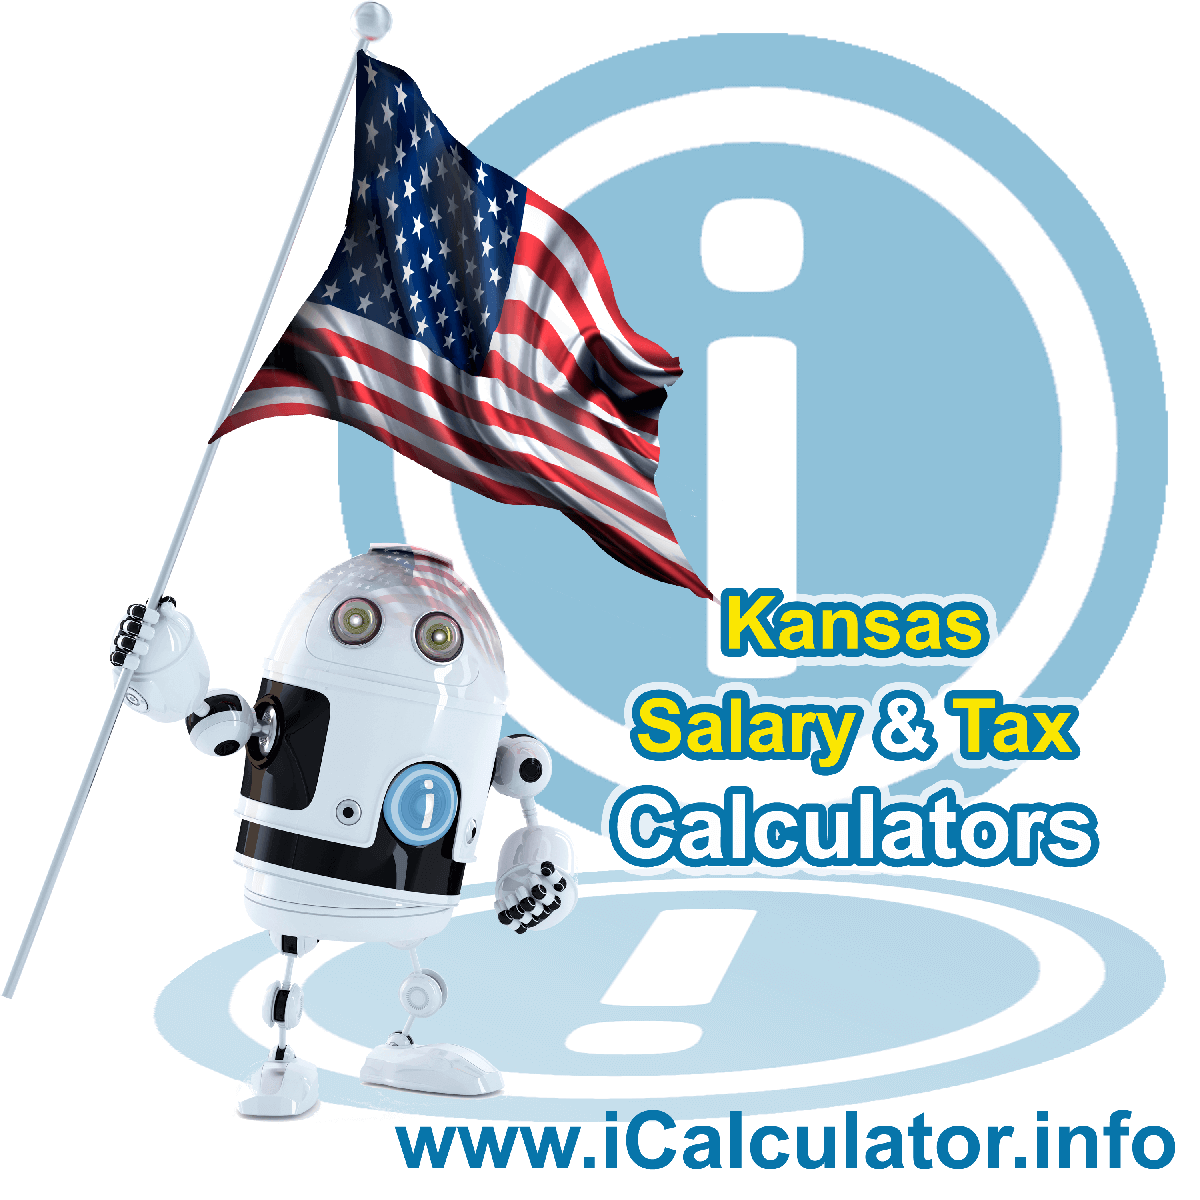 Kansas Salary Calculator 2019 | iCalculator | The Kansas Salary Calculator allows you to quickly calculate your salary after tax including Kansas State Tax, Federal State Tax, Medicare Deductions, Social Security, Capital Gains and other income tax and salary deductions complete with supporting Kansas state tax tables